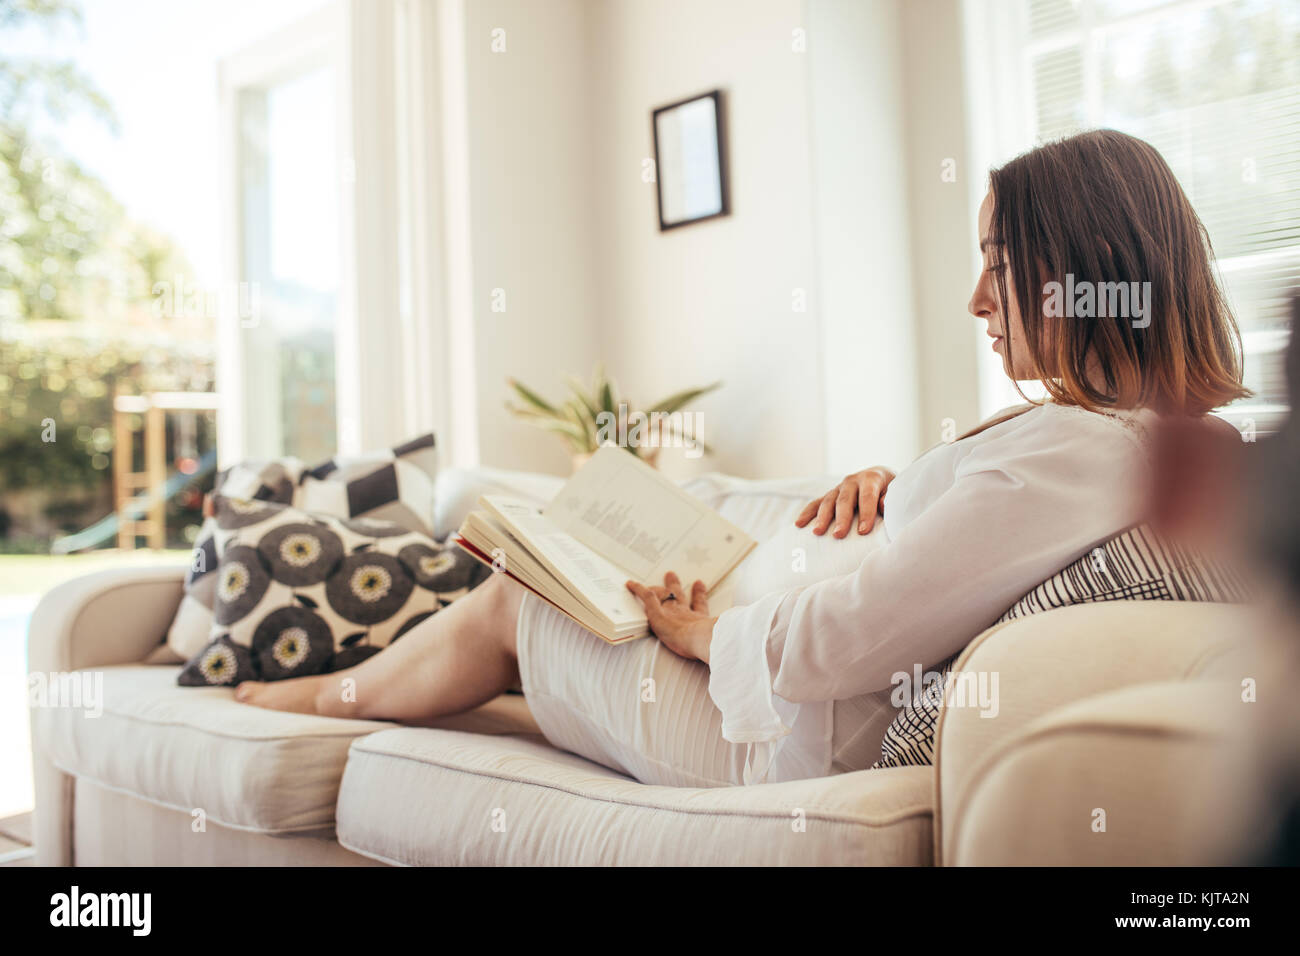 Pregnant woman sitting on sofa touching her belly and reading book. Expecting mother relaxing on sofa ready a book. - Stock Image